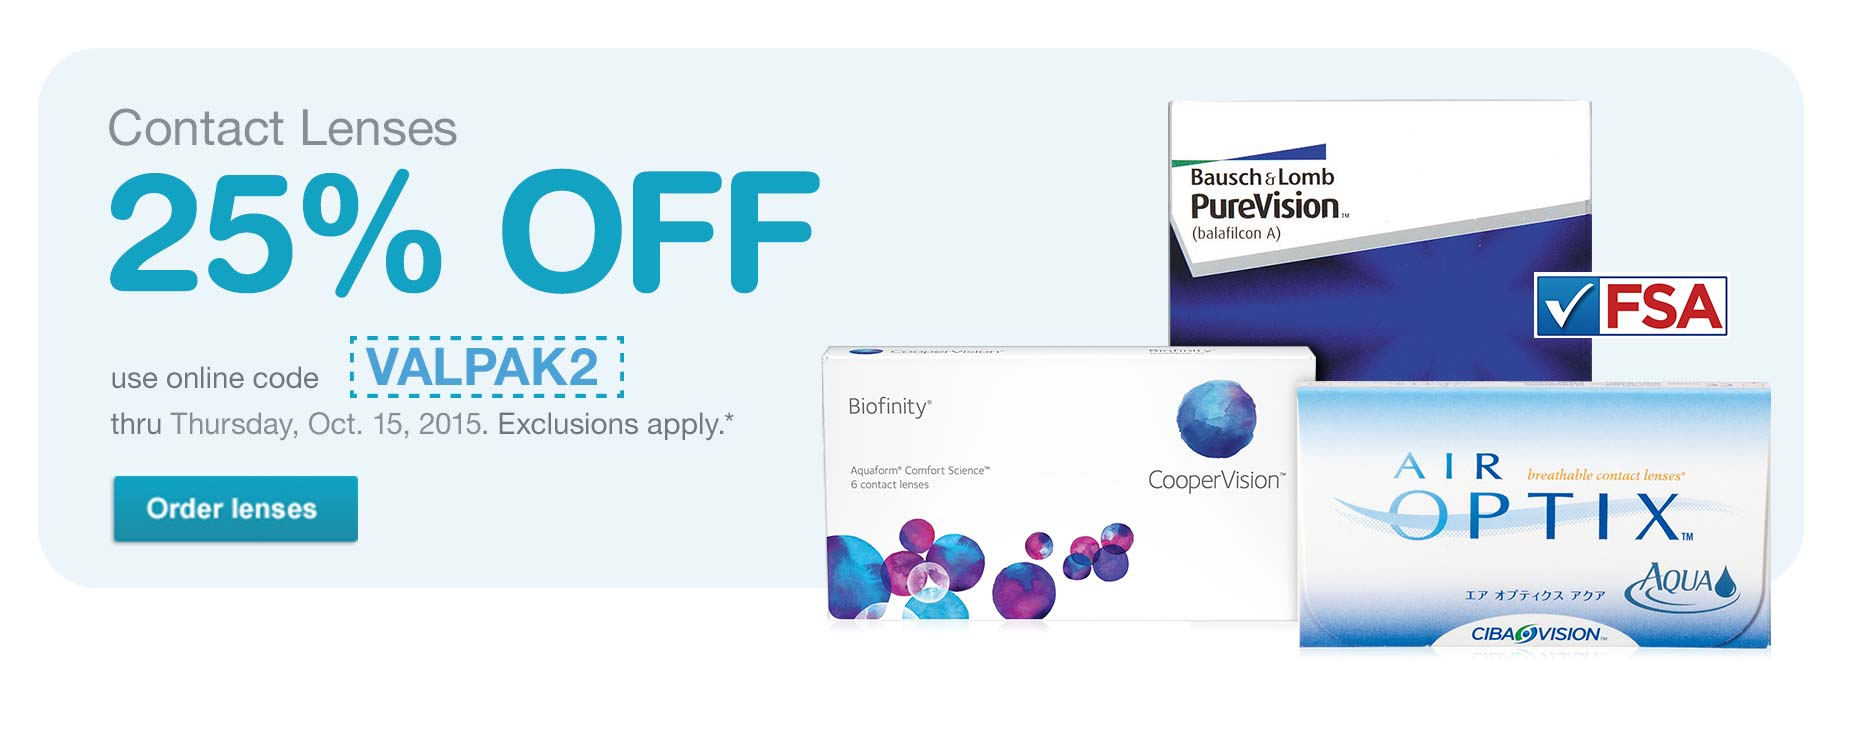 Contact Lenses 25% off with code VALPAK2 thru 10/15/15*. Order lenses.